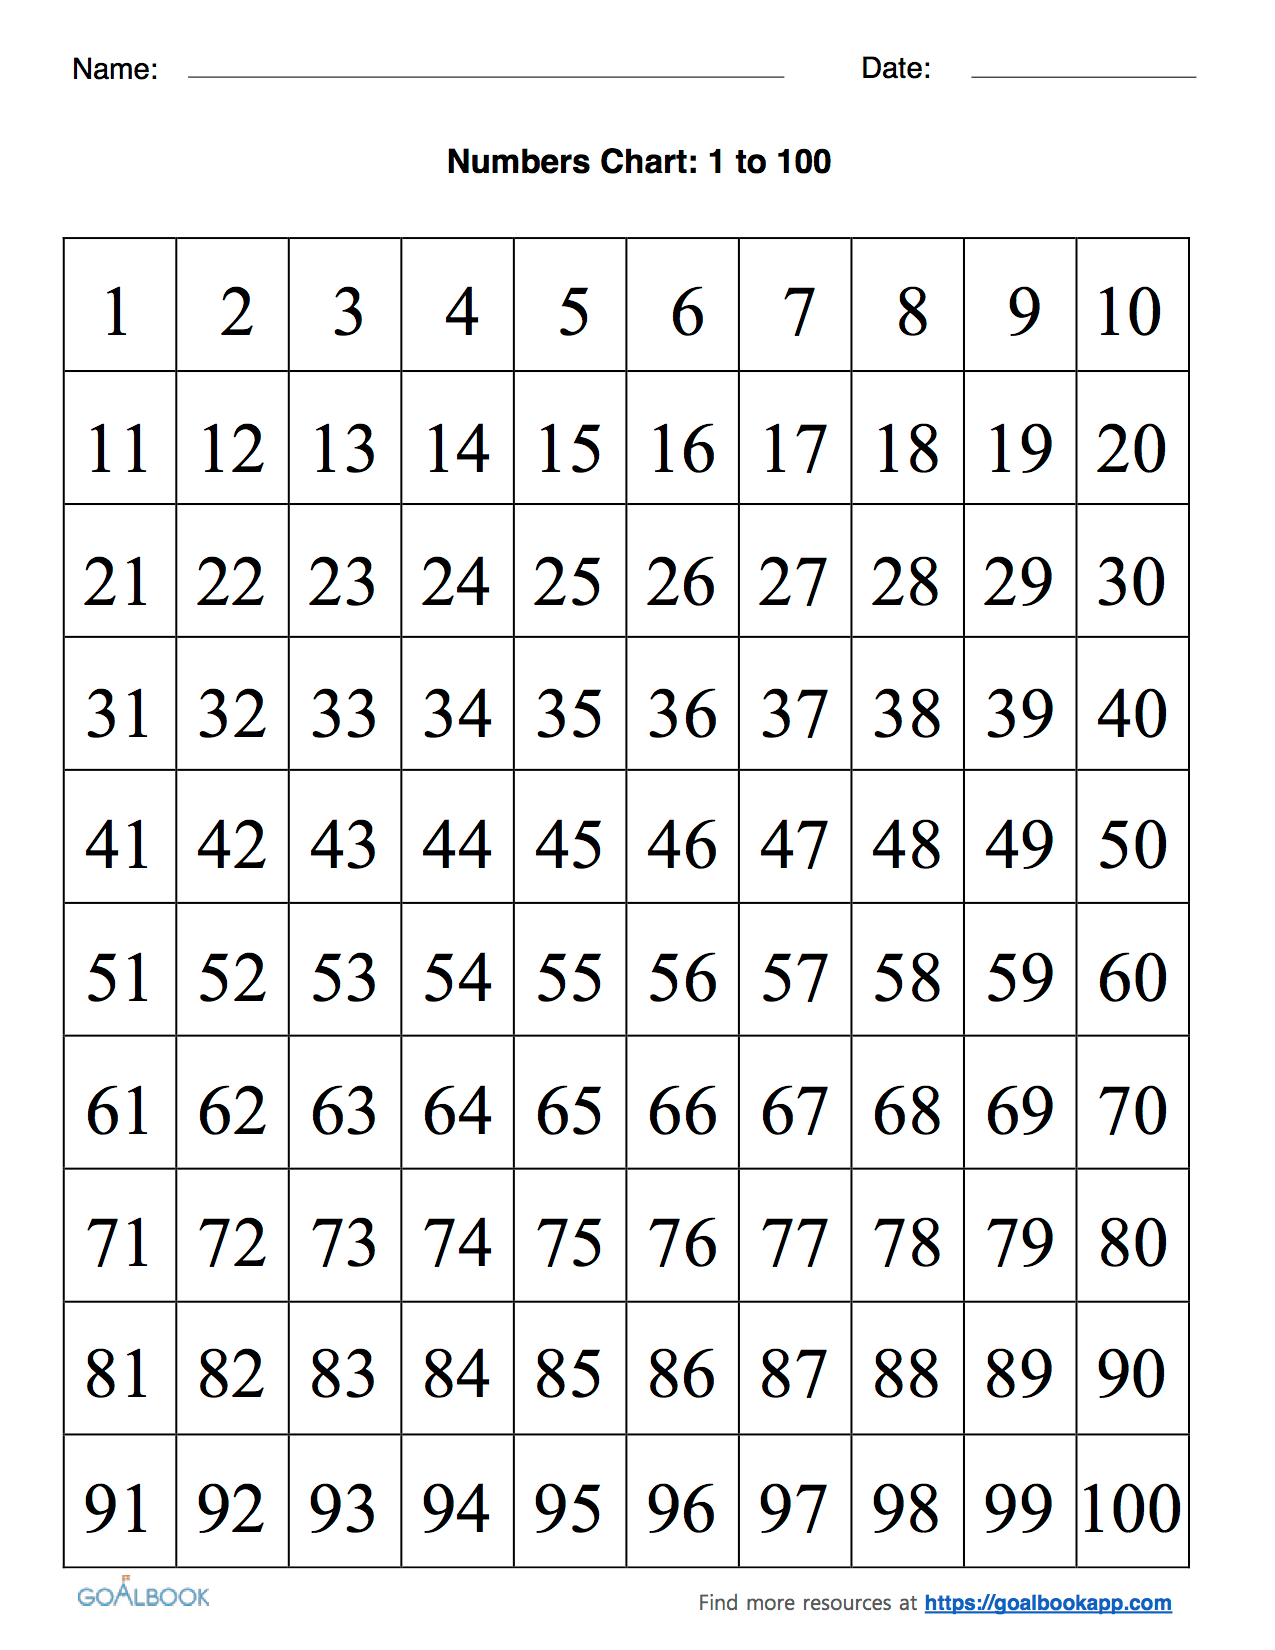 Worksheet For Numbers 1 100